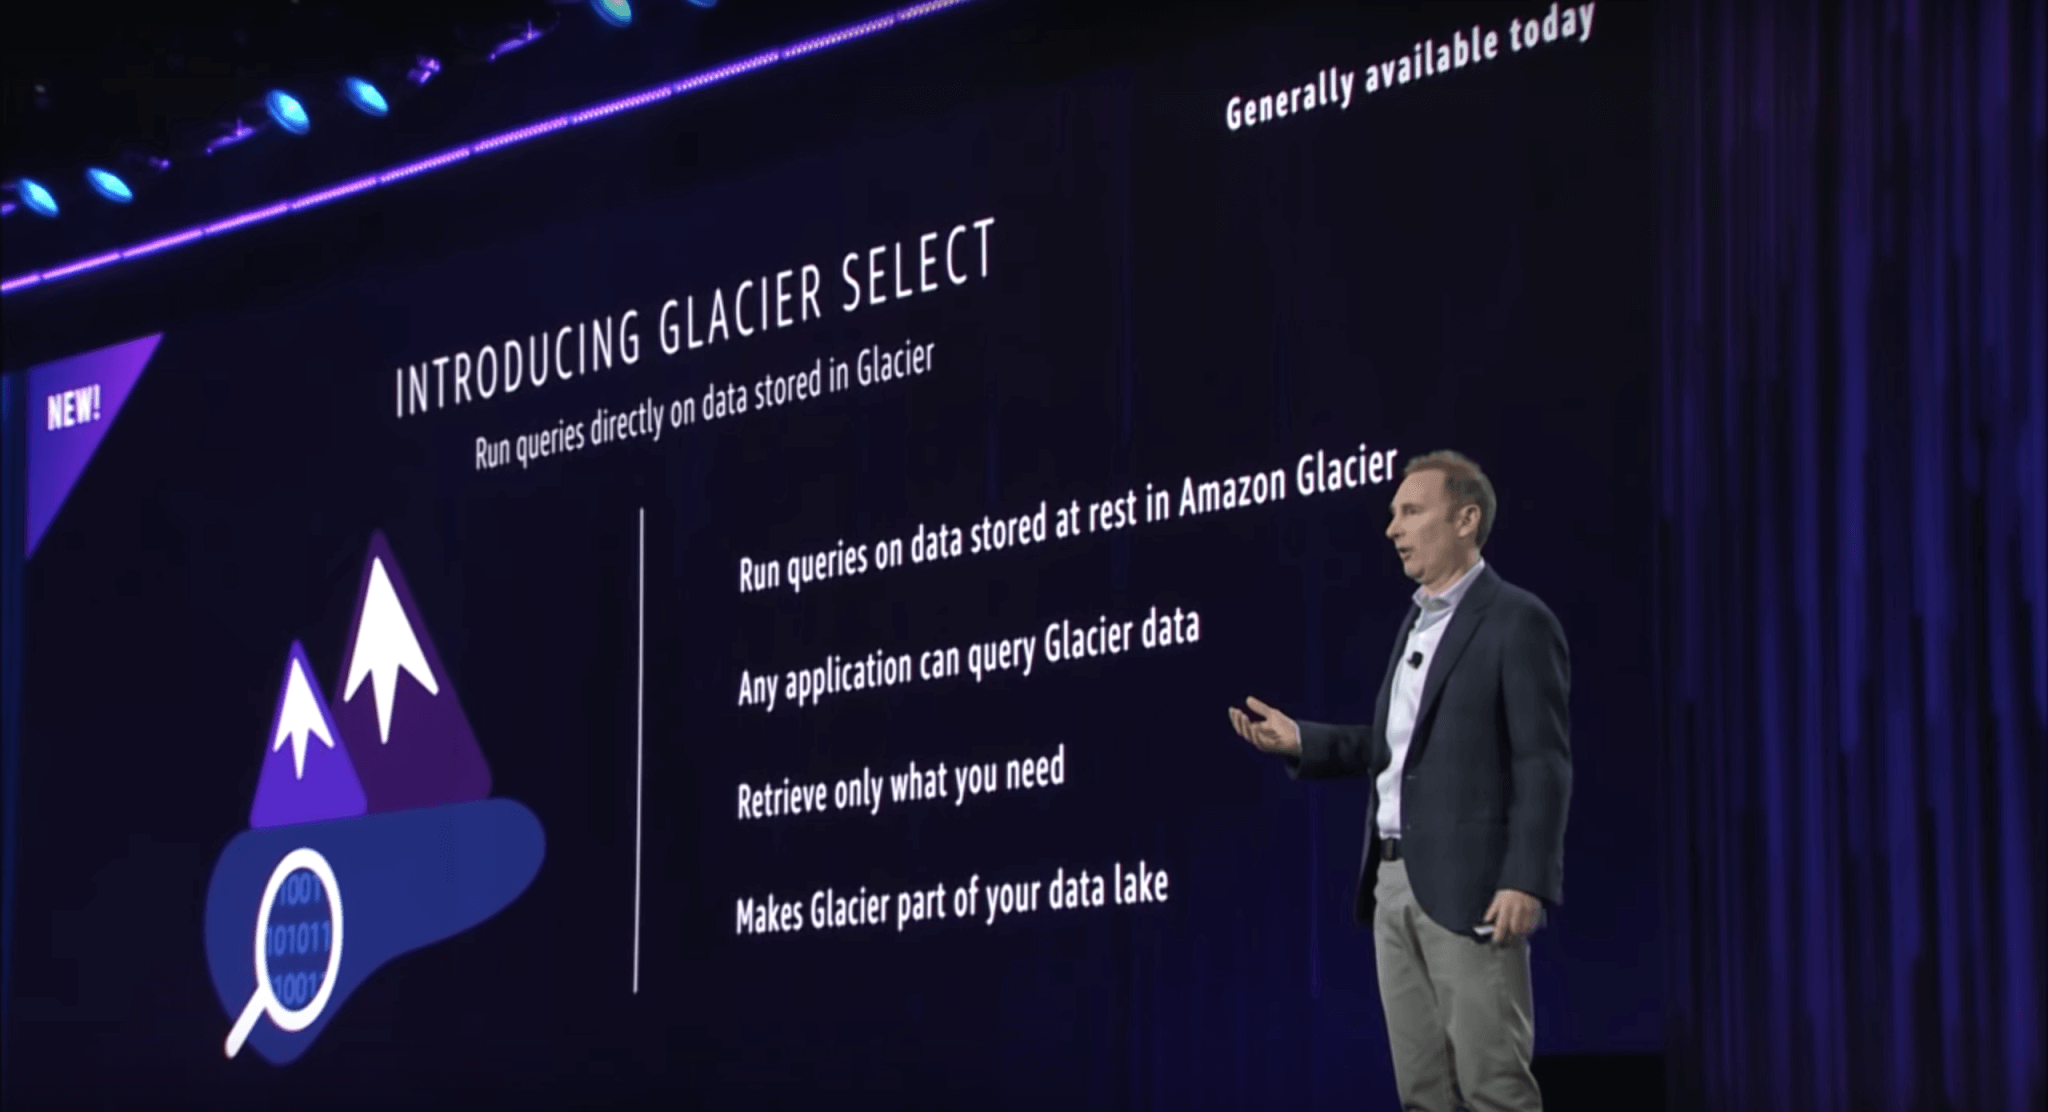 AWS Announcements at re:Invent 2017 - Introducing Glacier Select